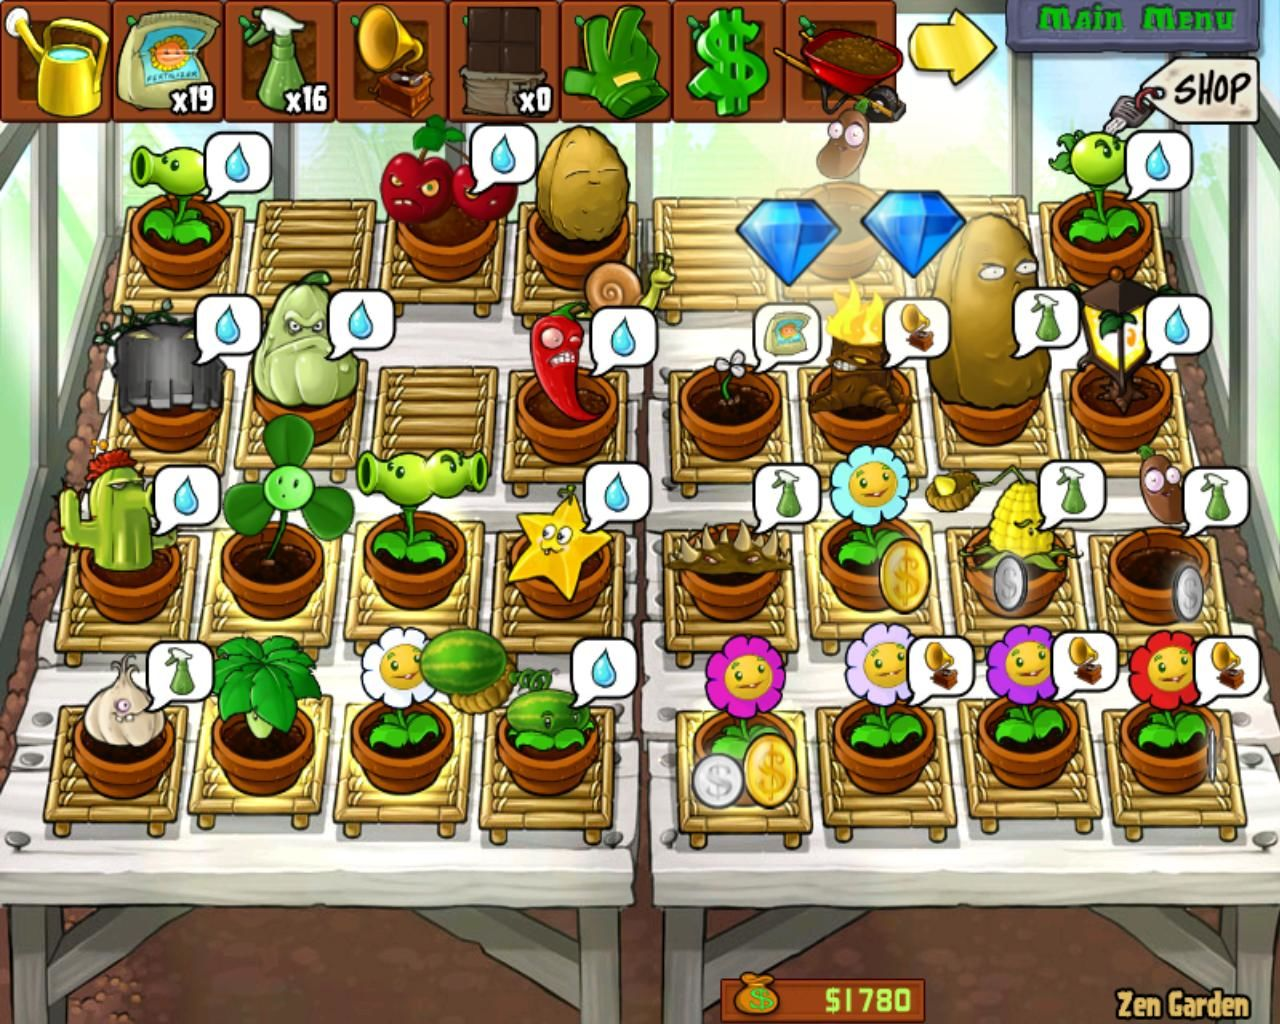 Zen Garten Plants Vs Zombies Plants Vs Zombies Screenshots For Windows Mobygames